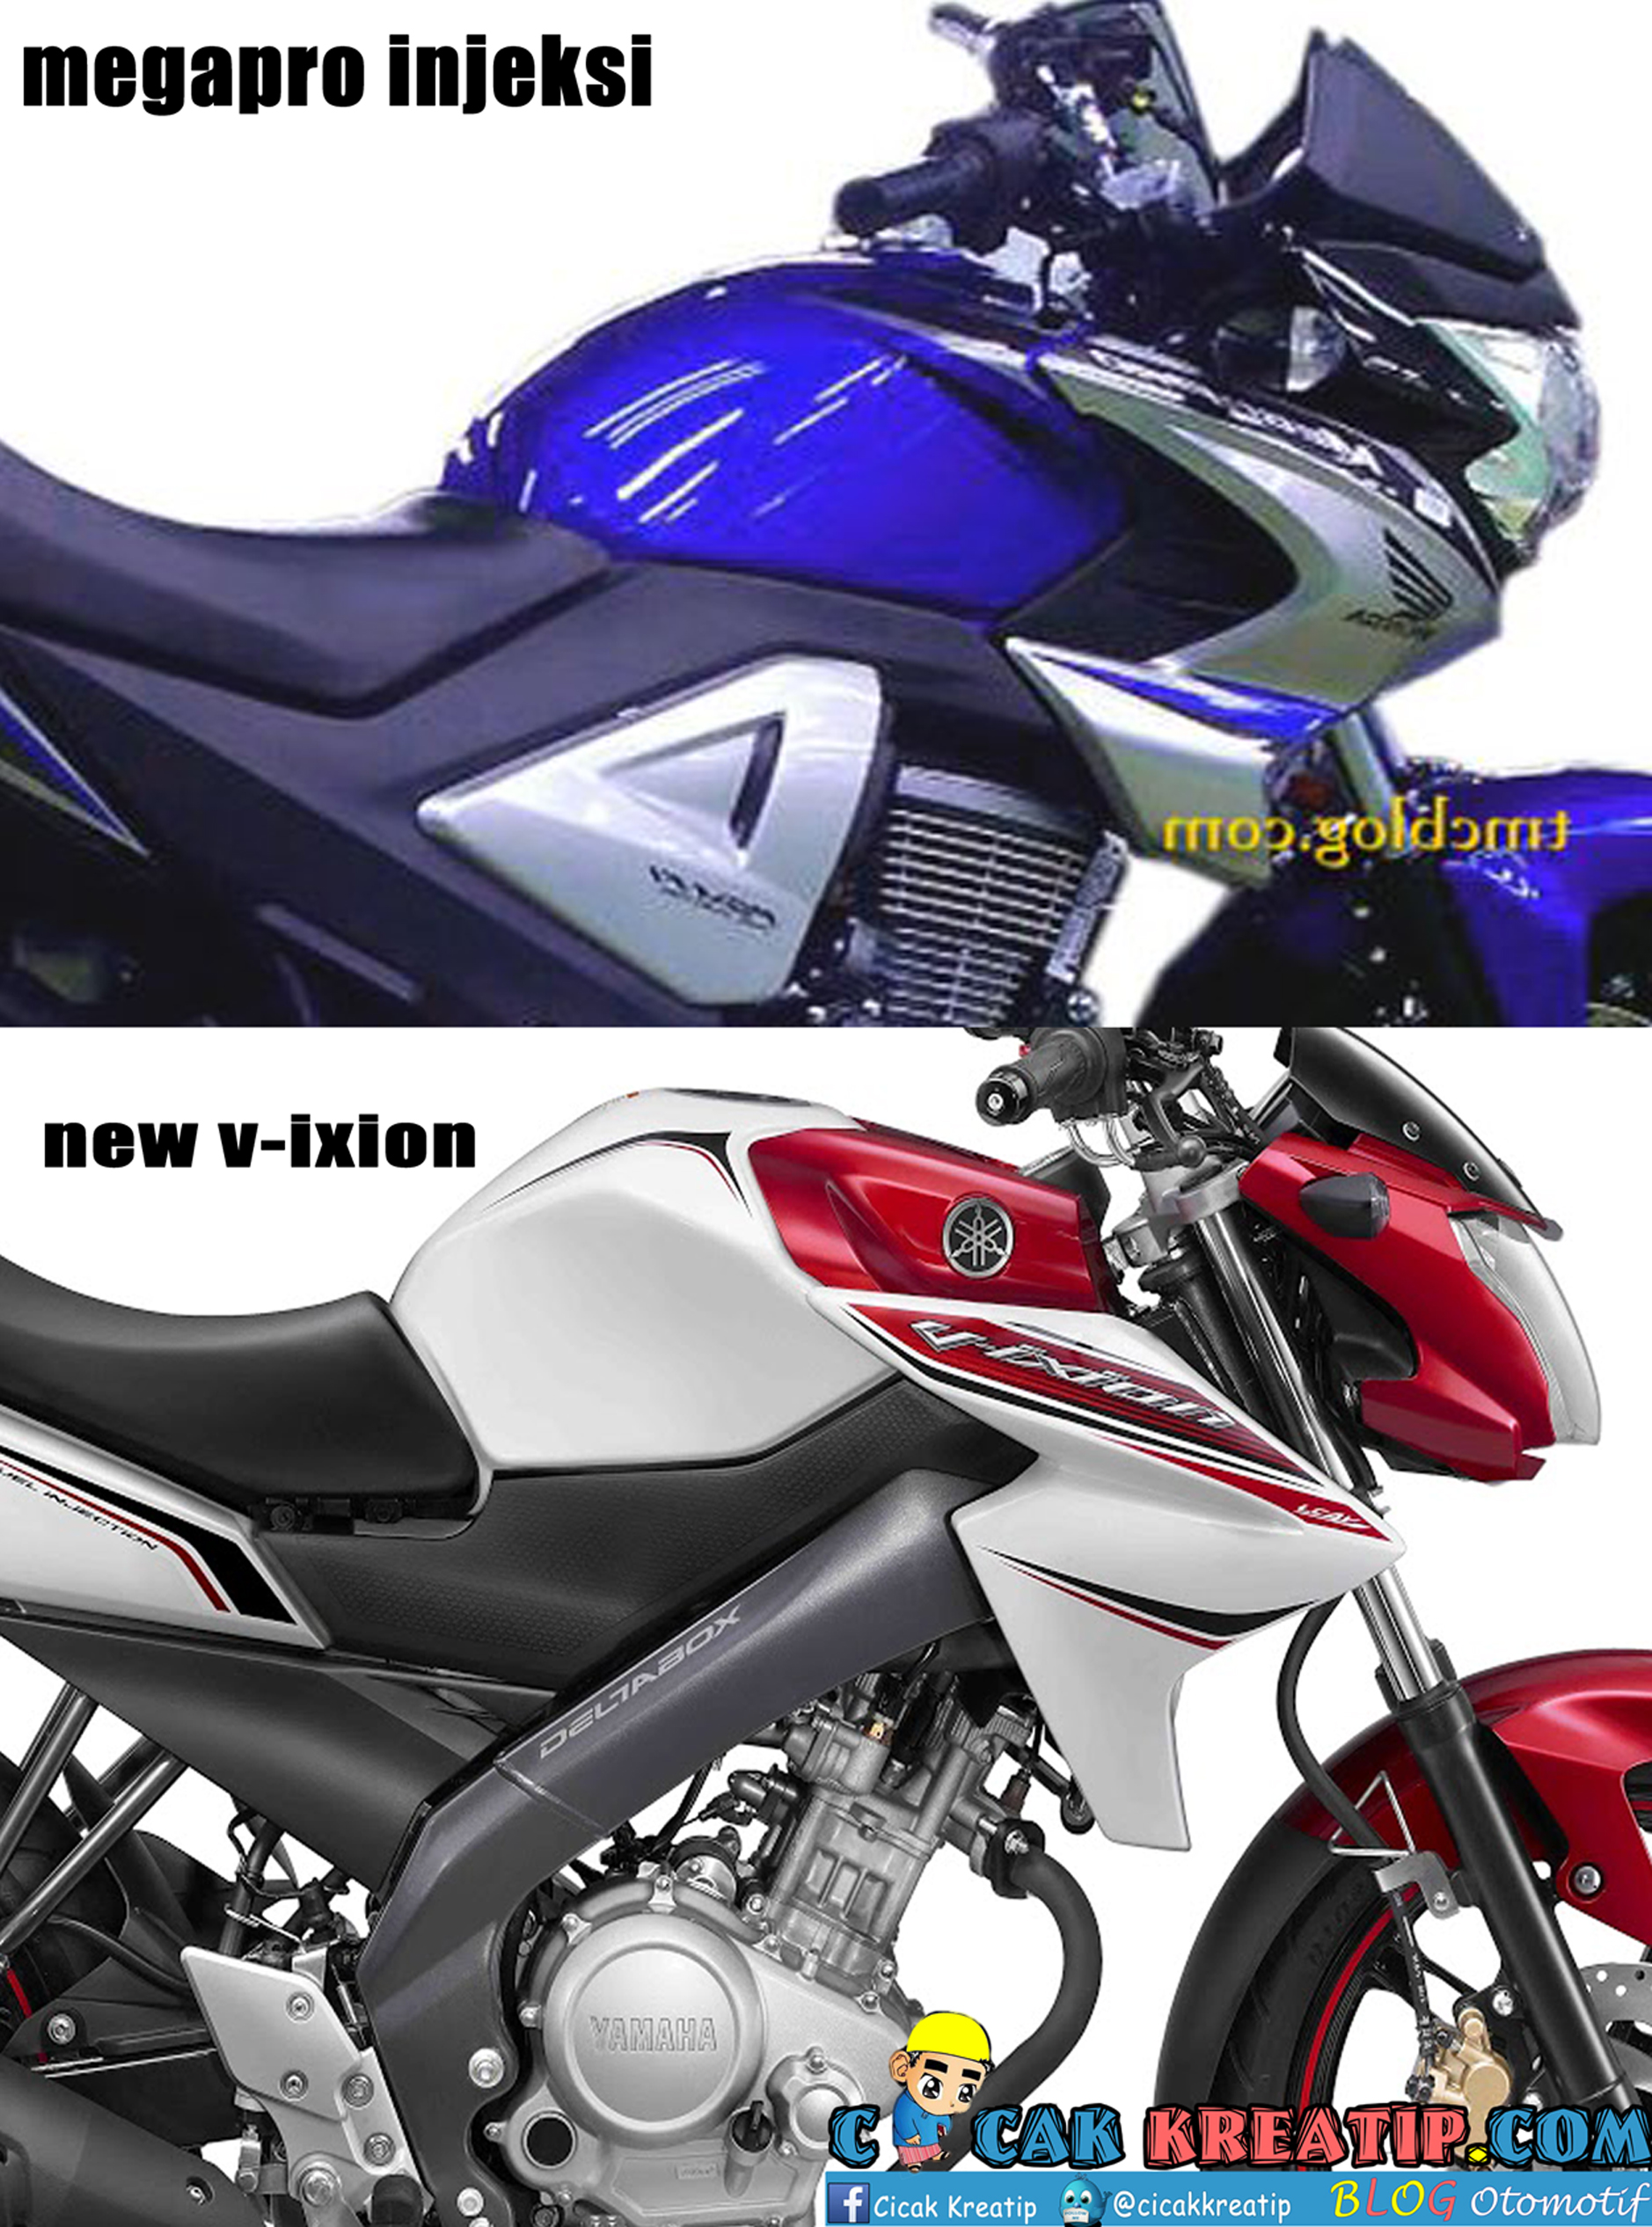 New megapro Fi & New V-ixion